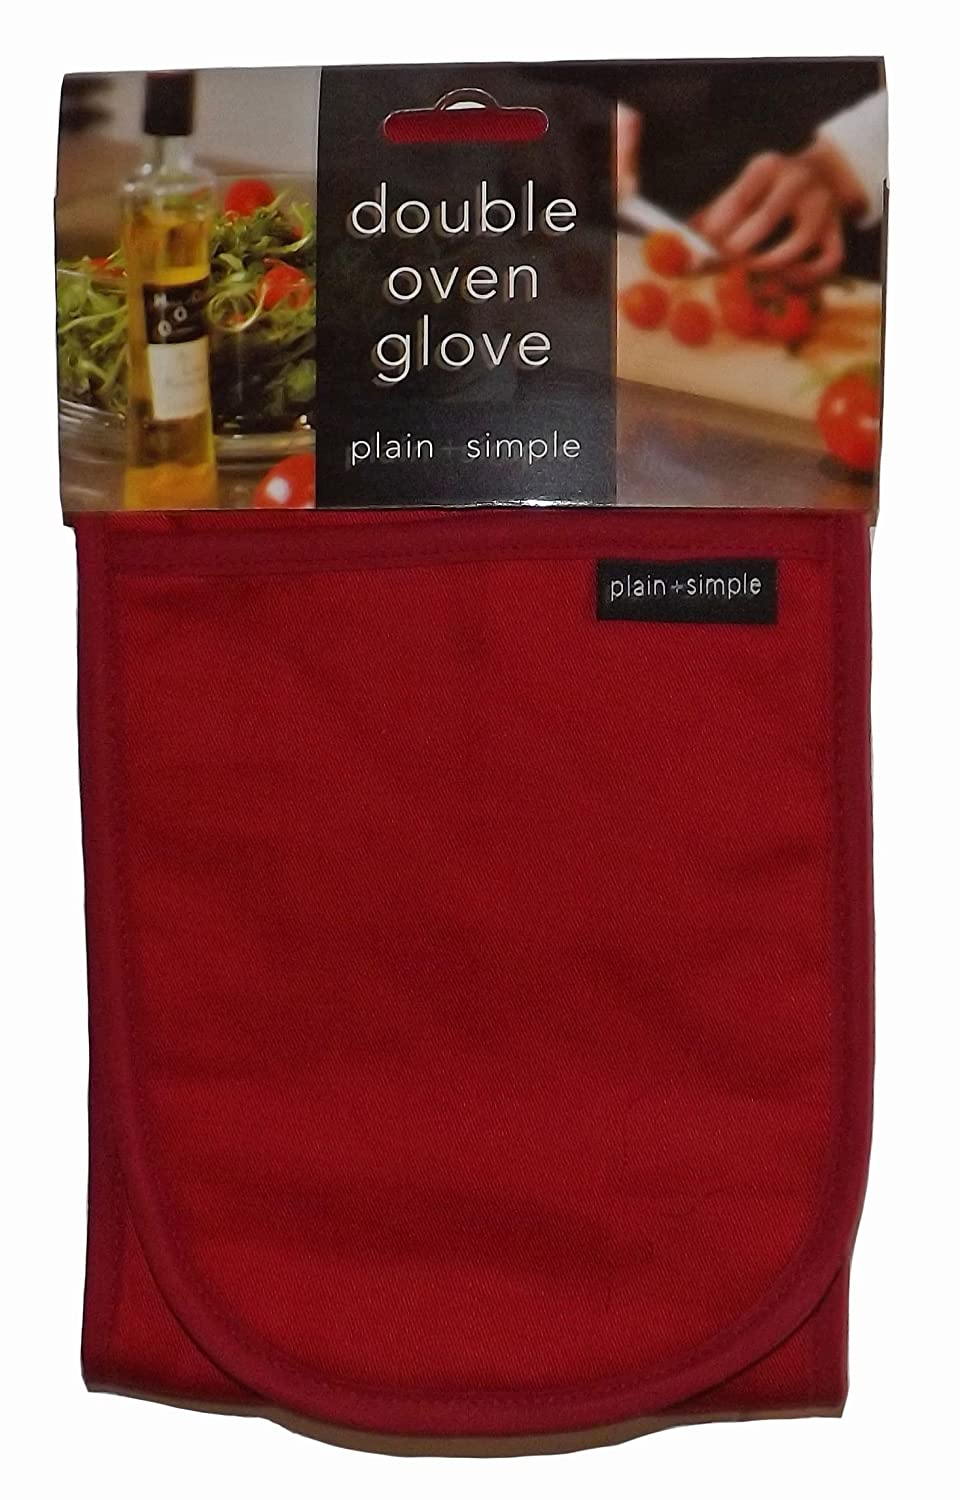 KITCHEN ACCESSORIES PLAIN RED (CHILLI PEPPER RED) COTTON BLEND DOUBLE OVEN GLOVE 4 Your Home